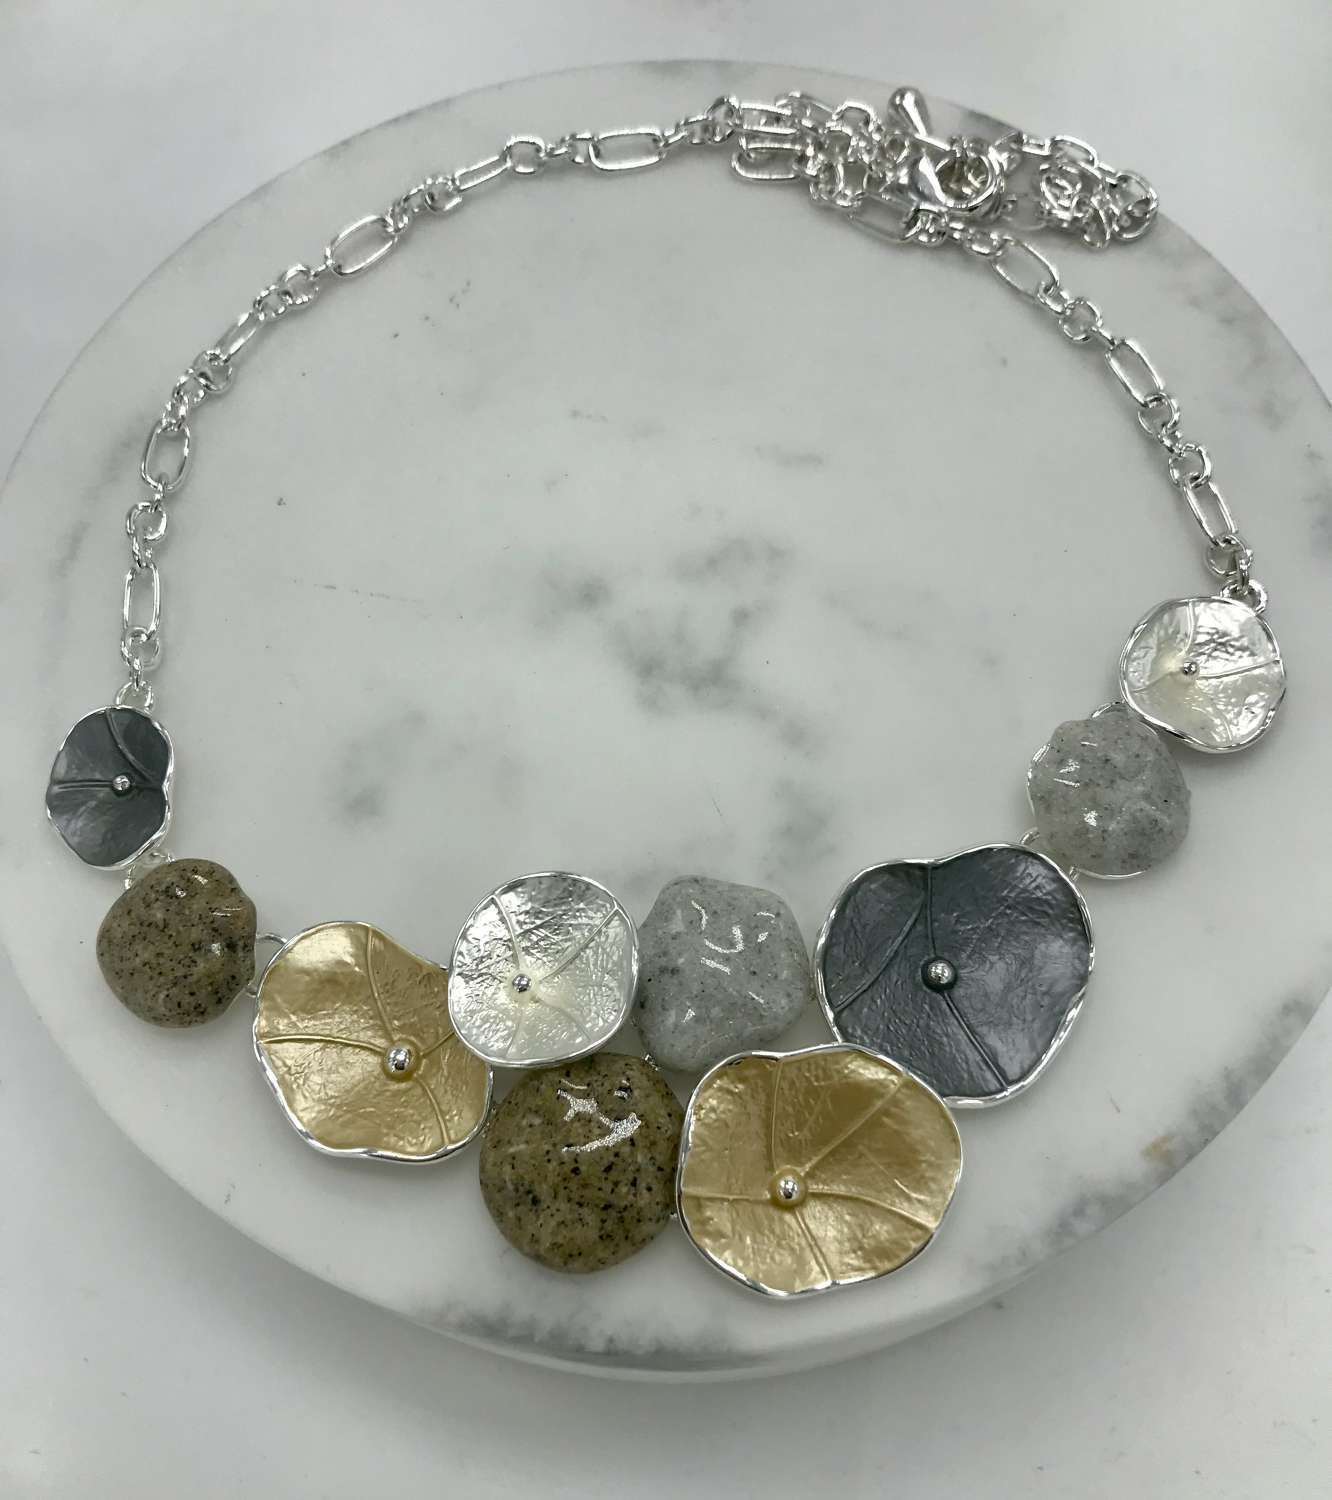 Mixed metals and stones necklace